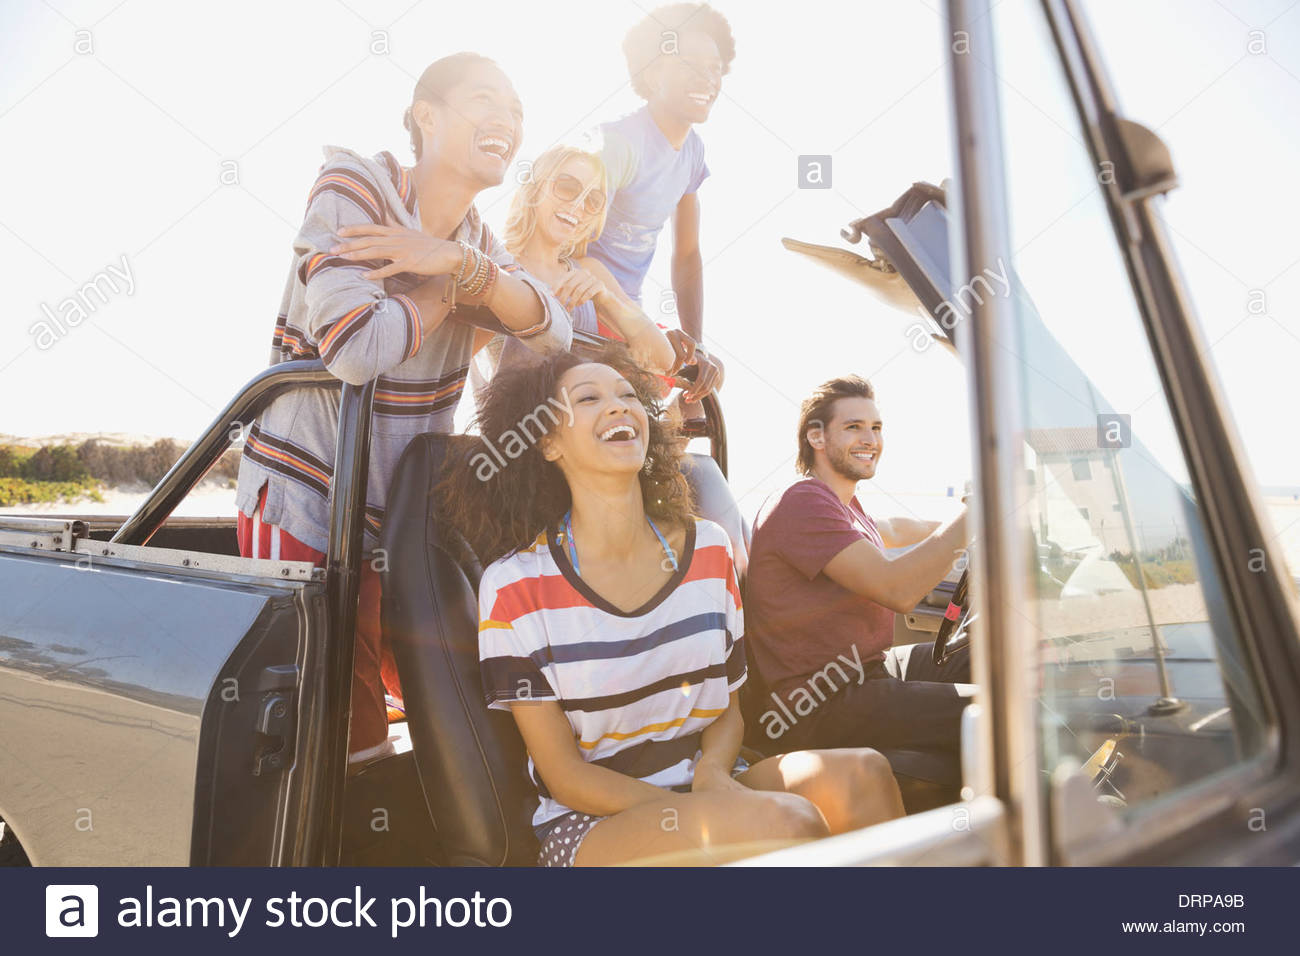 Group of friends taking a day trip to the beach - Stock Image